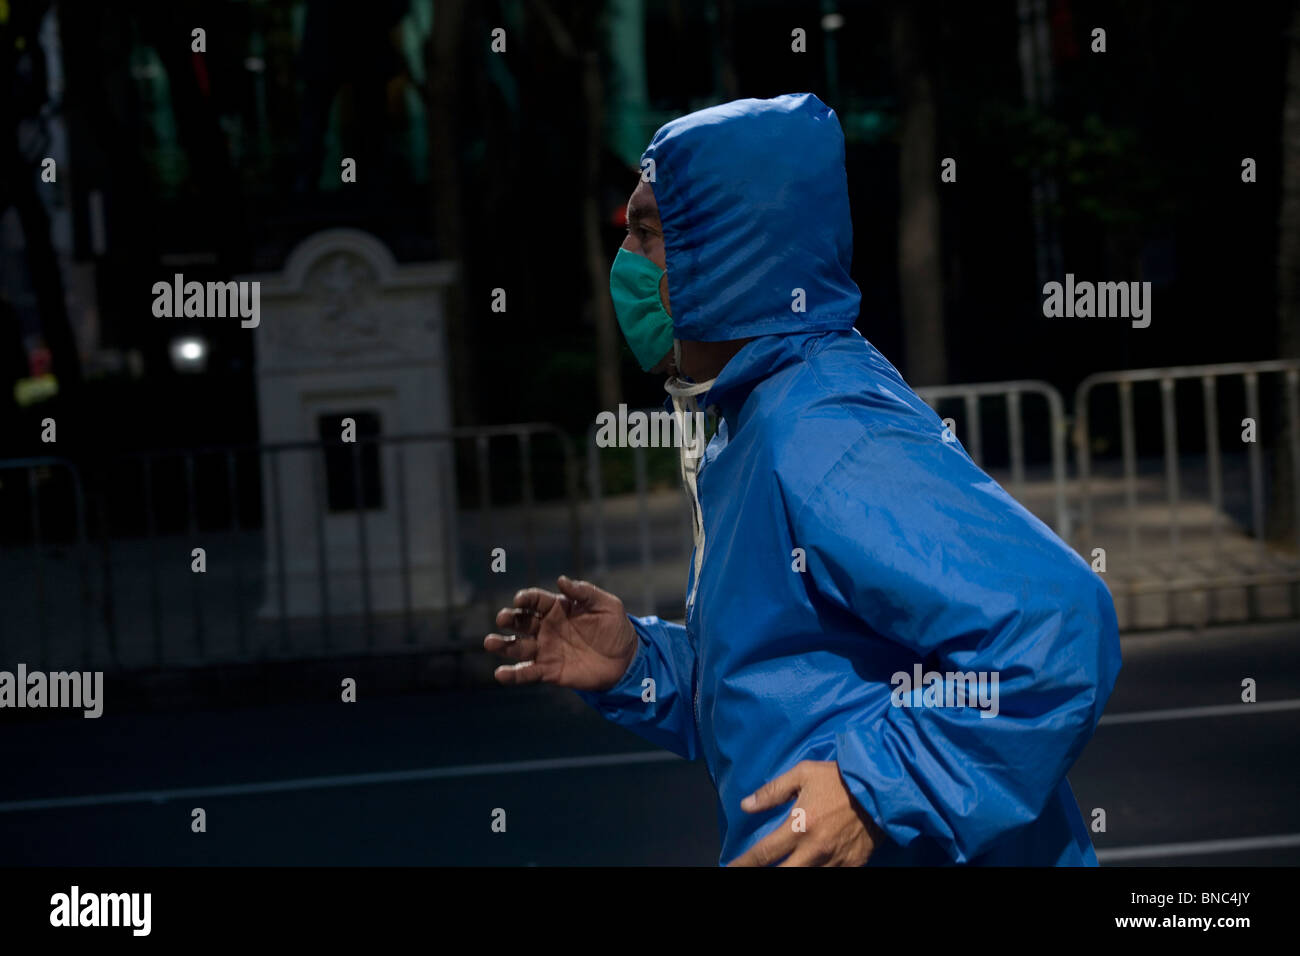 An man wears a surgical mask as a precaution against pollution as he jogs in Mexico City, December 13, 2009. - Stock Image